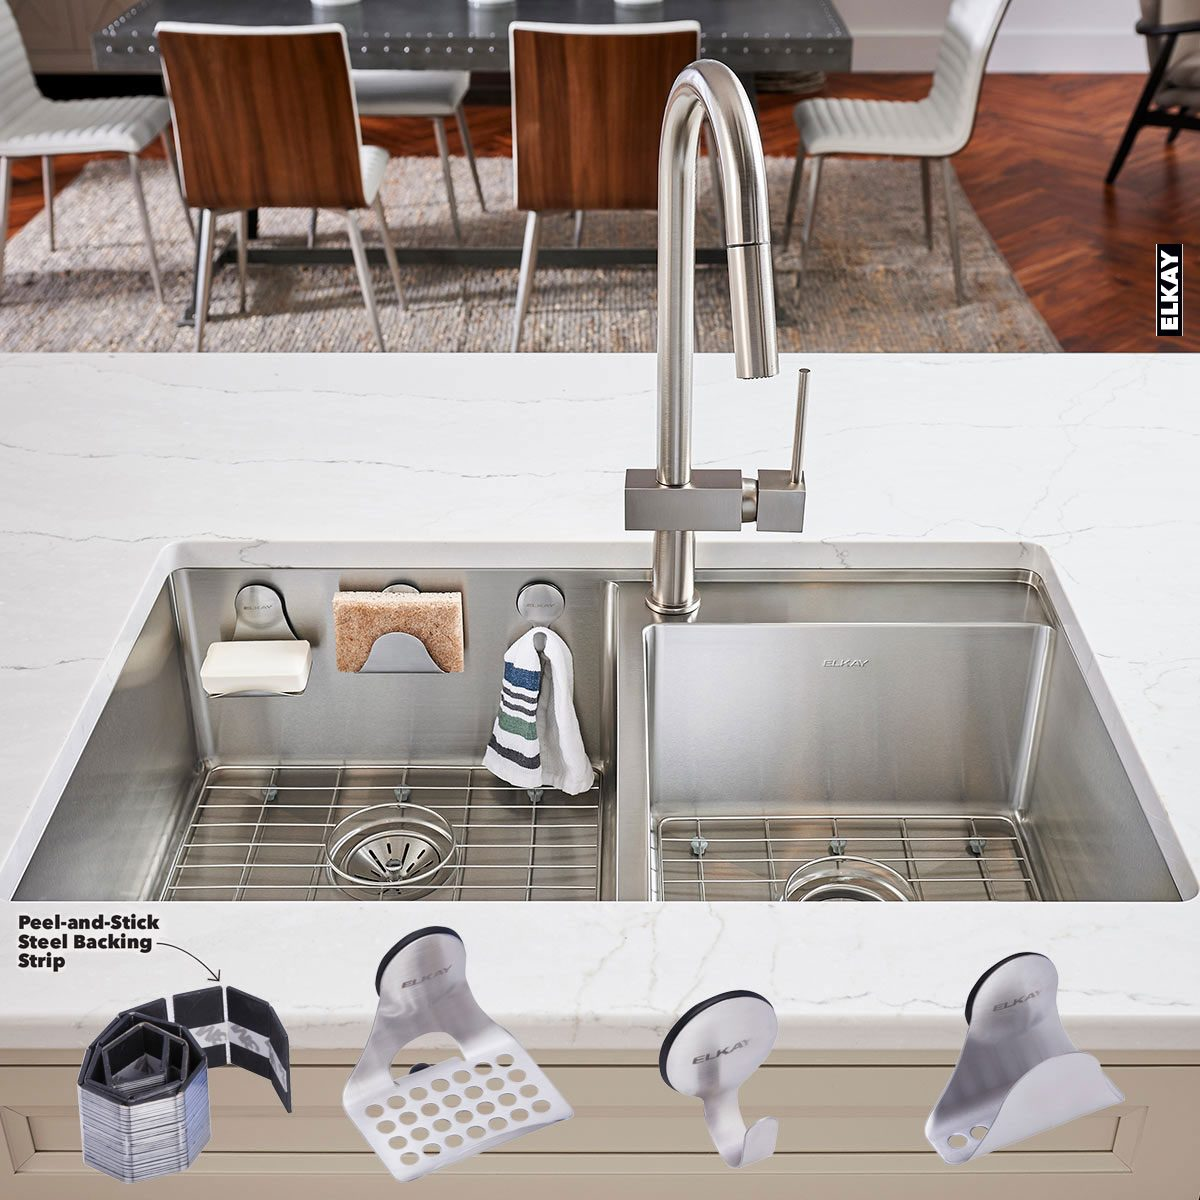 Clever stylish sink accessories